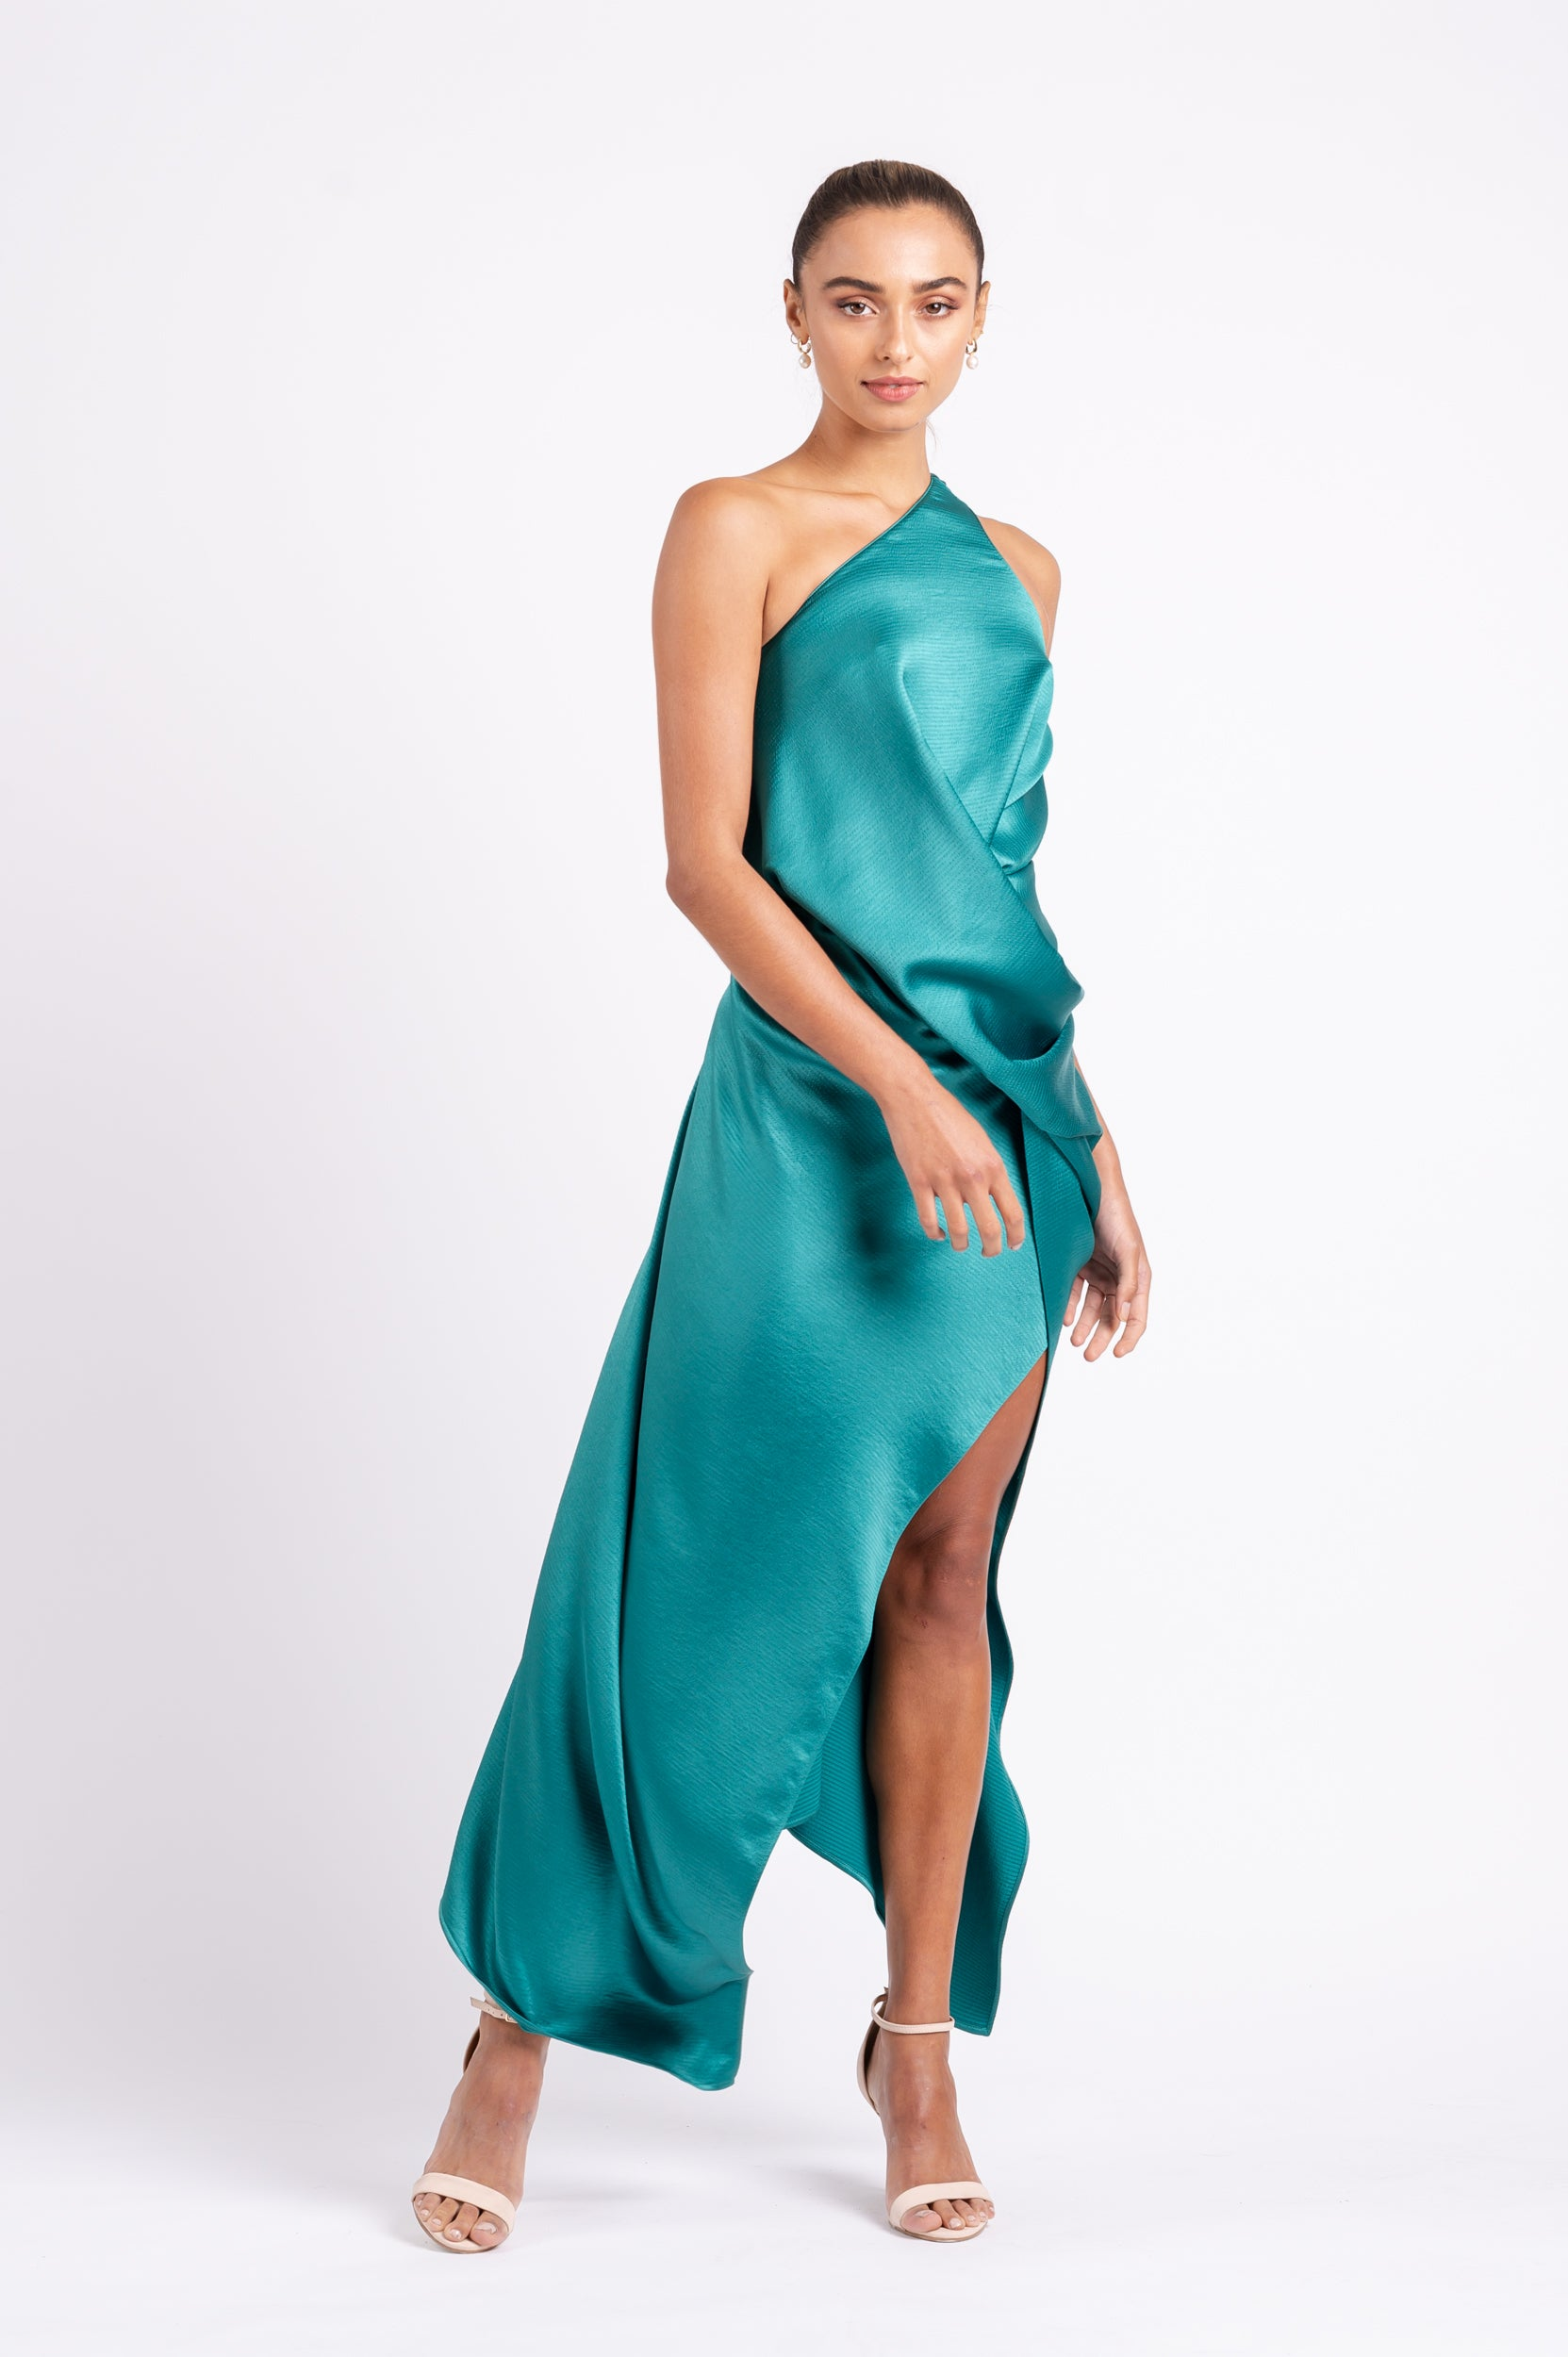 PHILLY DRESS IN JADE